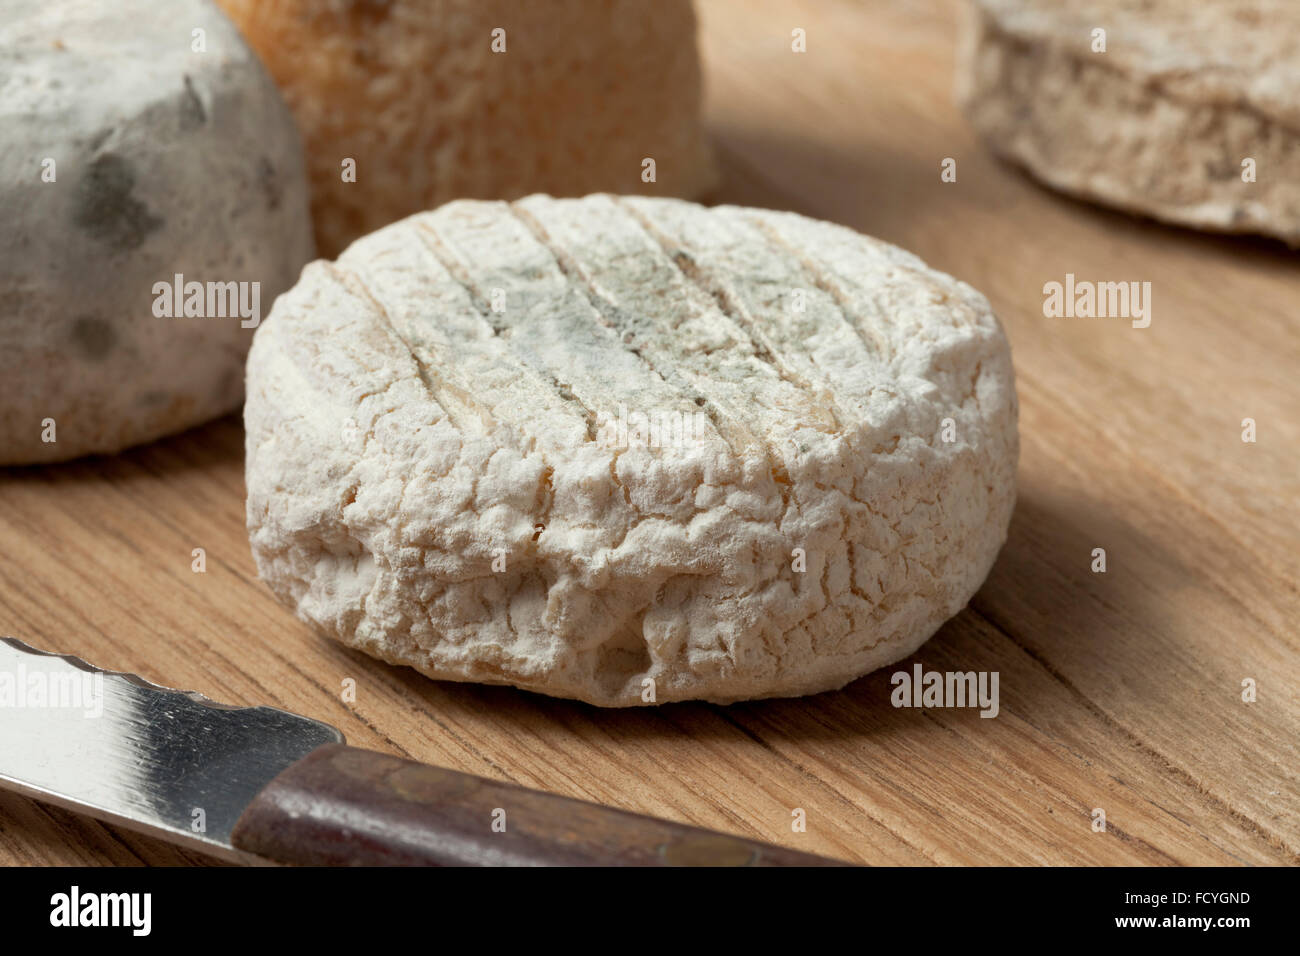 Traditional french goats cheese called chevre d'or - Stock Image